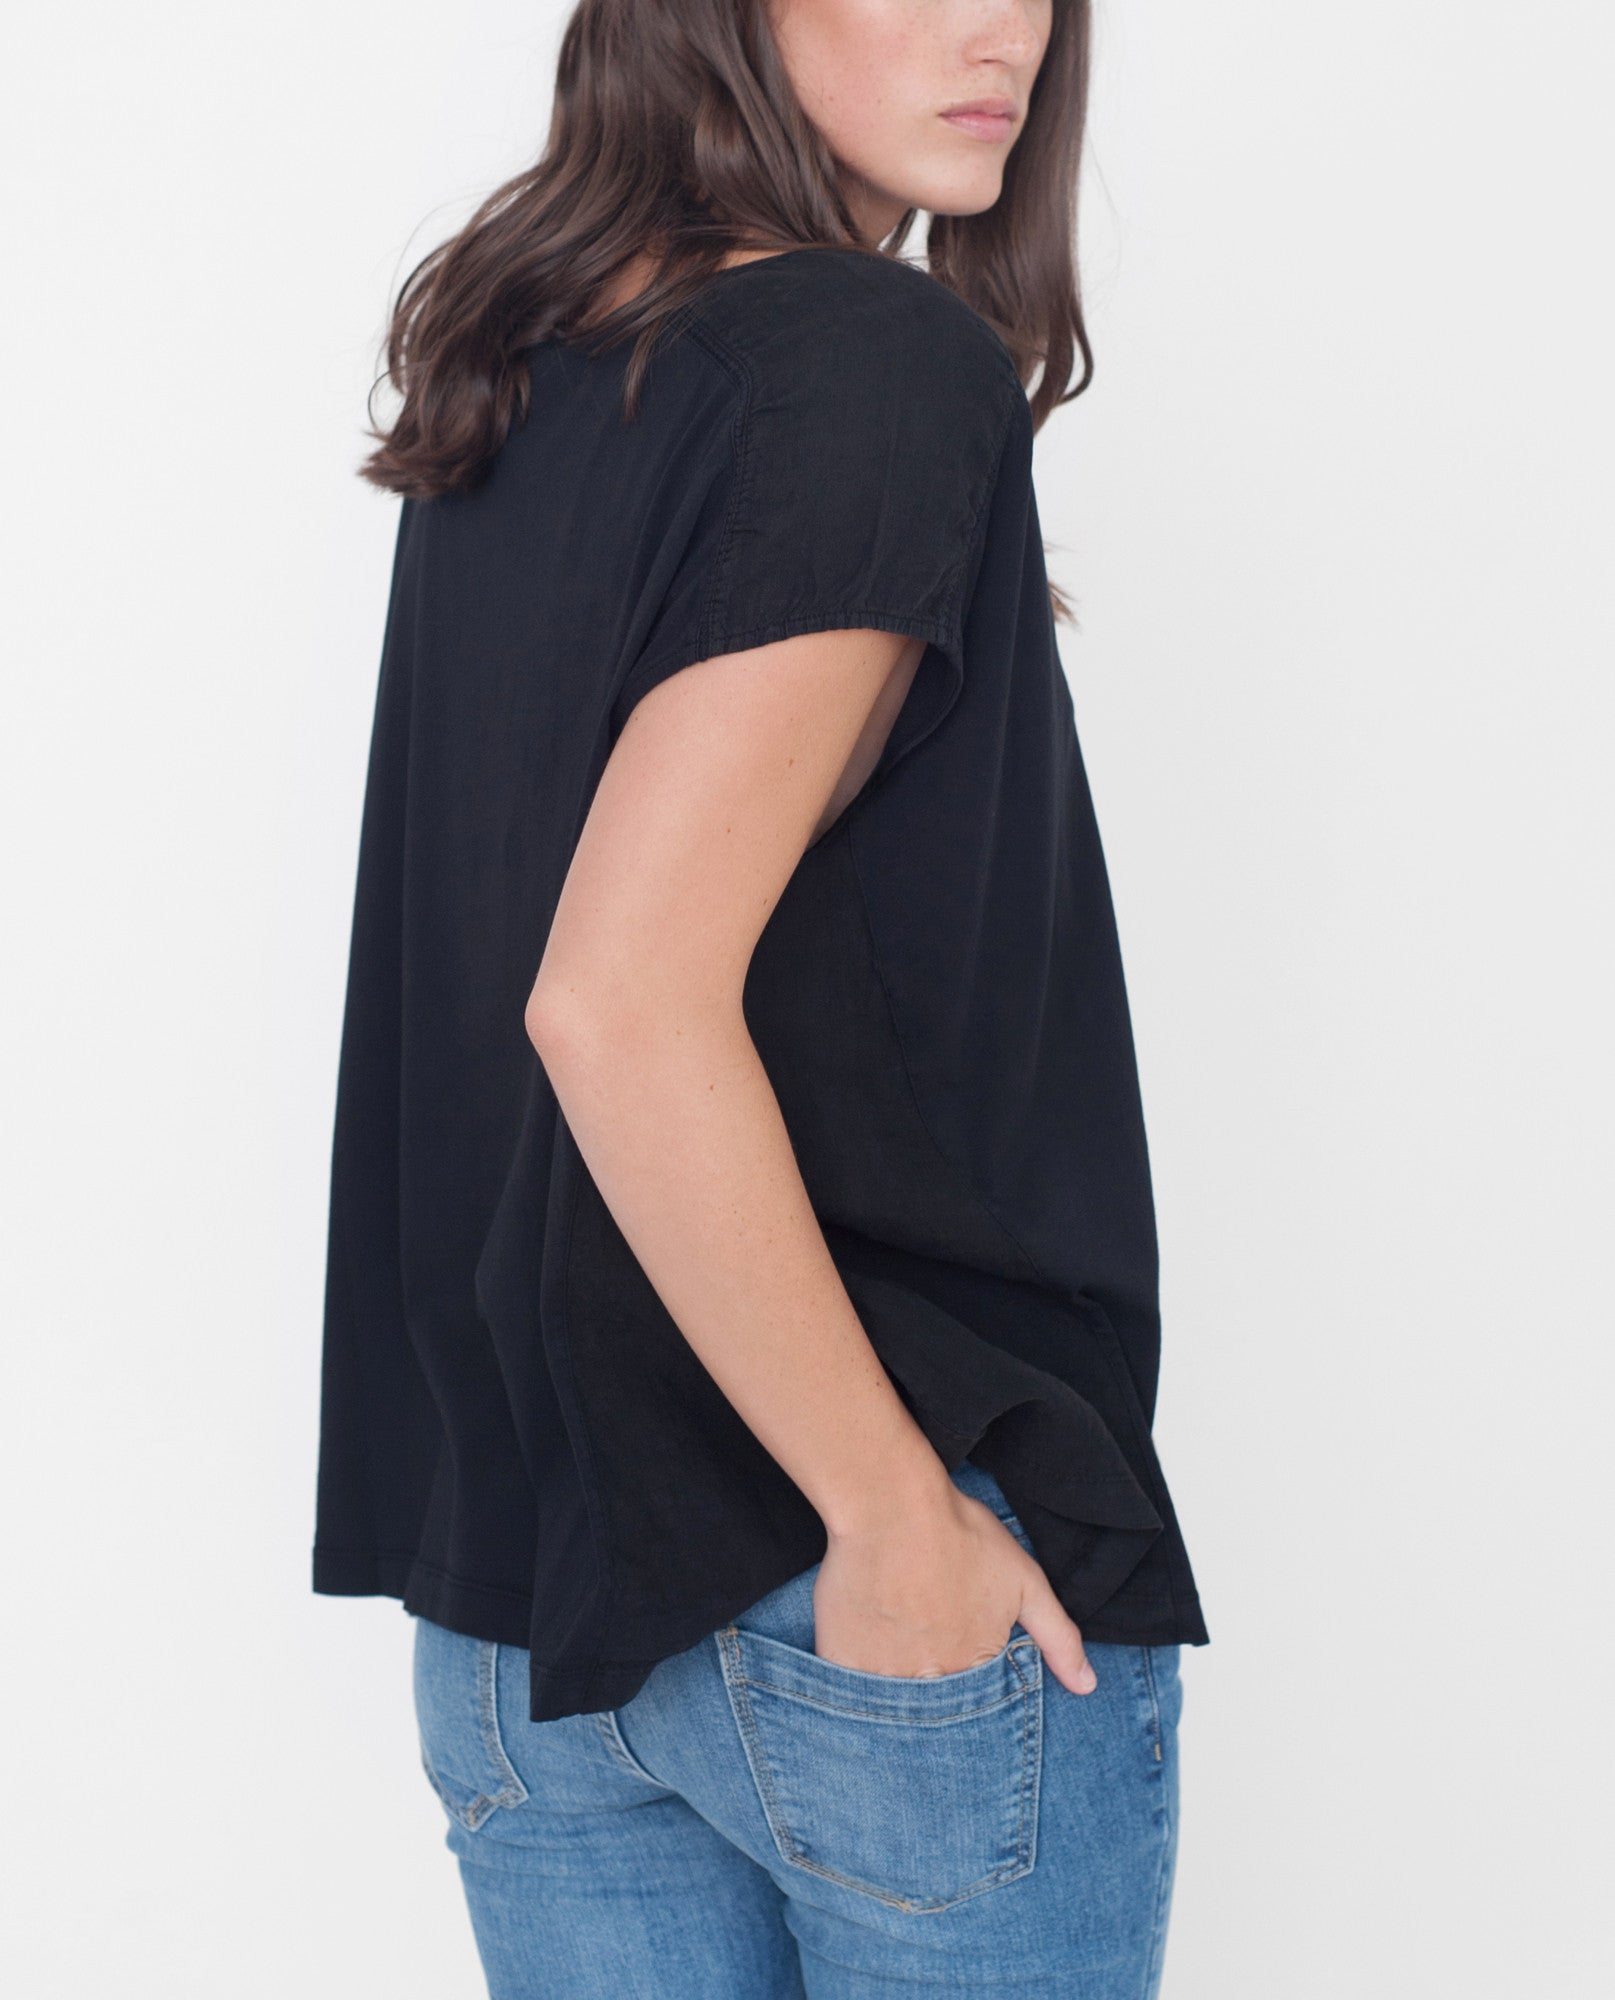 REESE Organic Cotton And Linen Top In Black